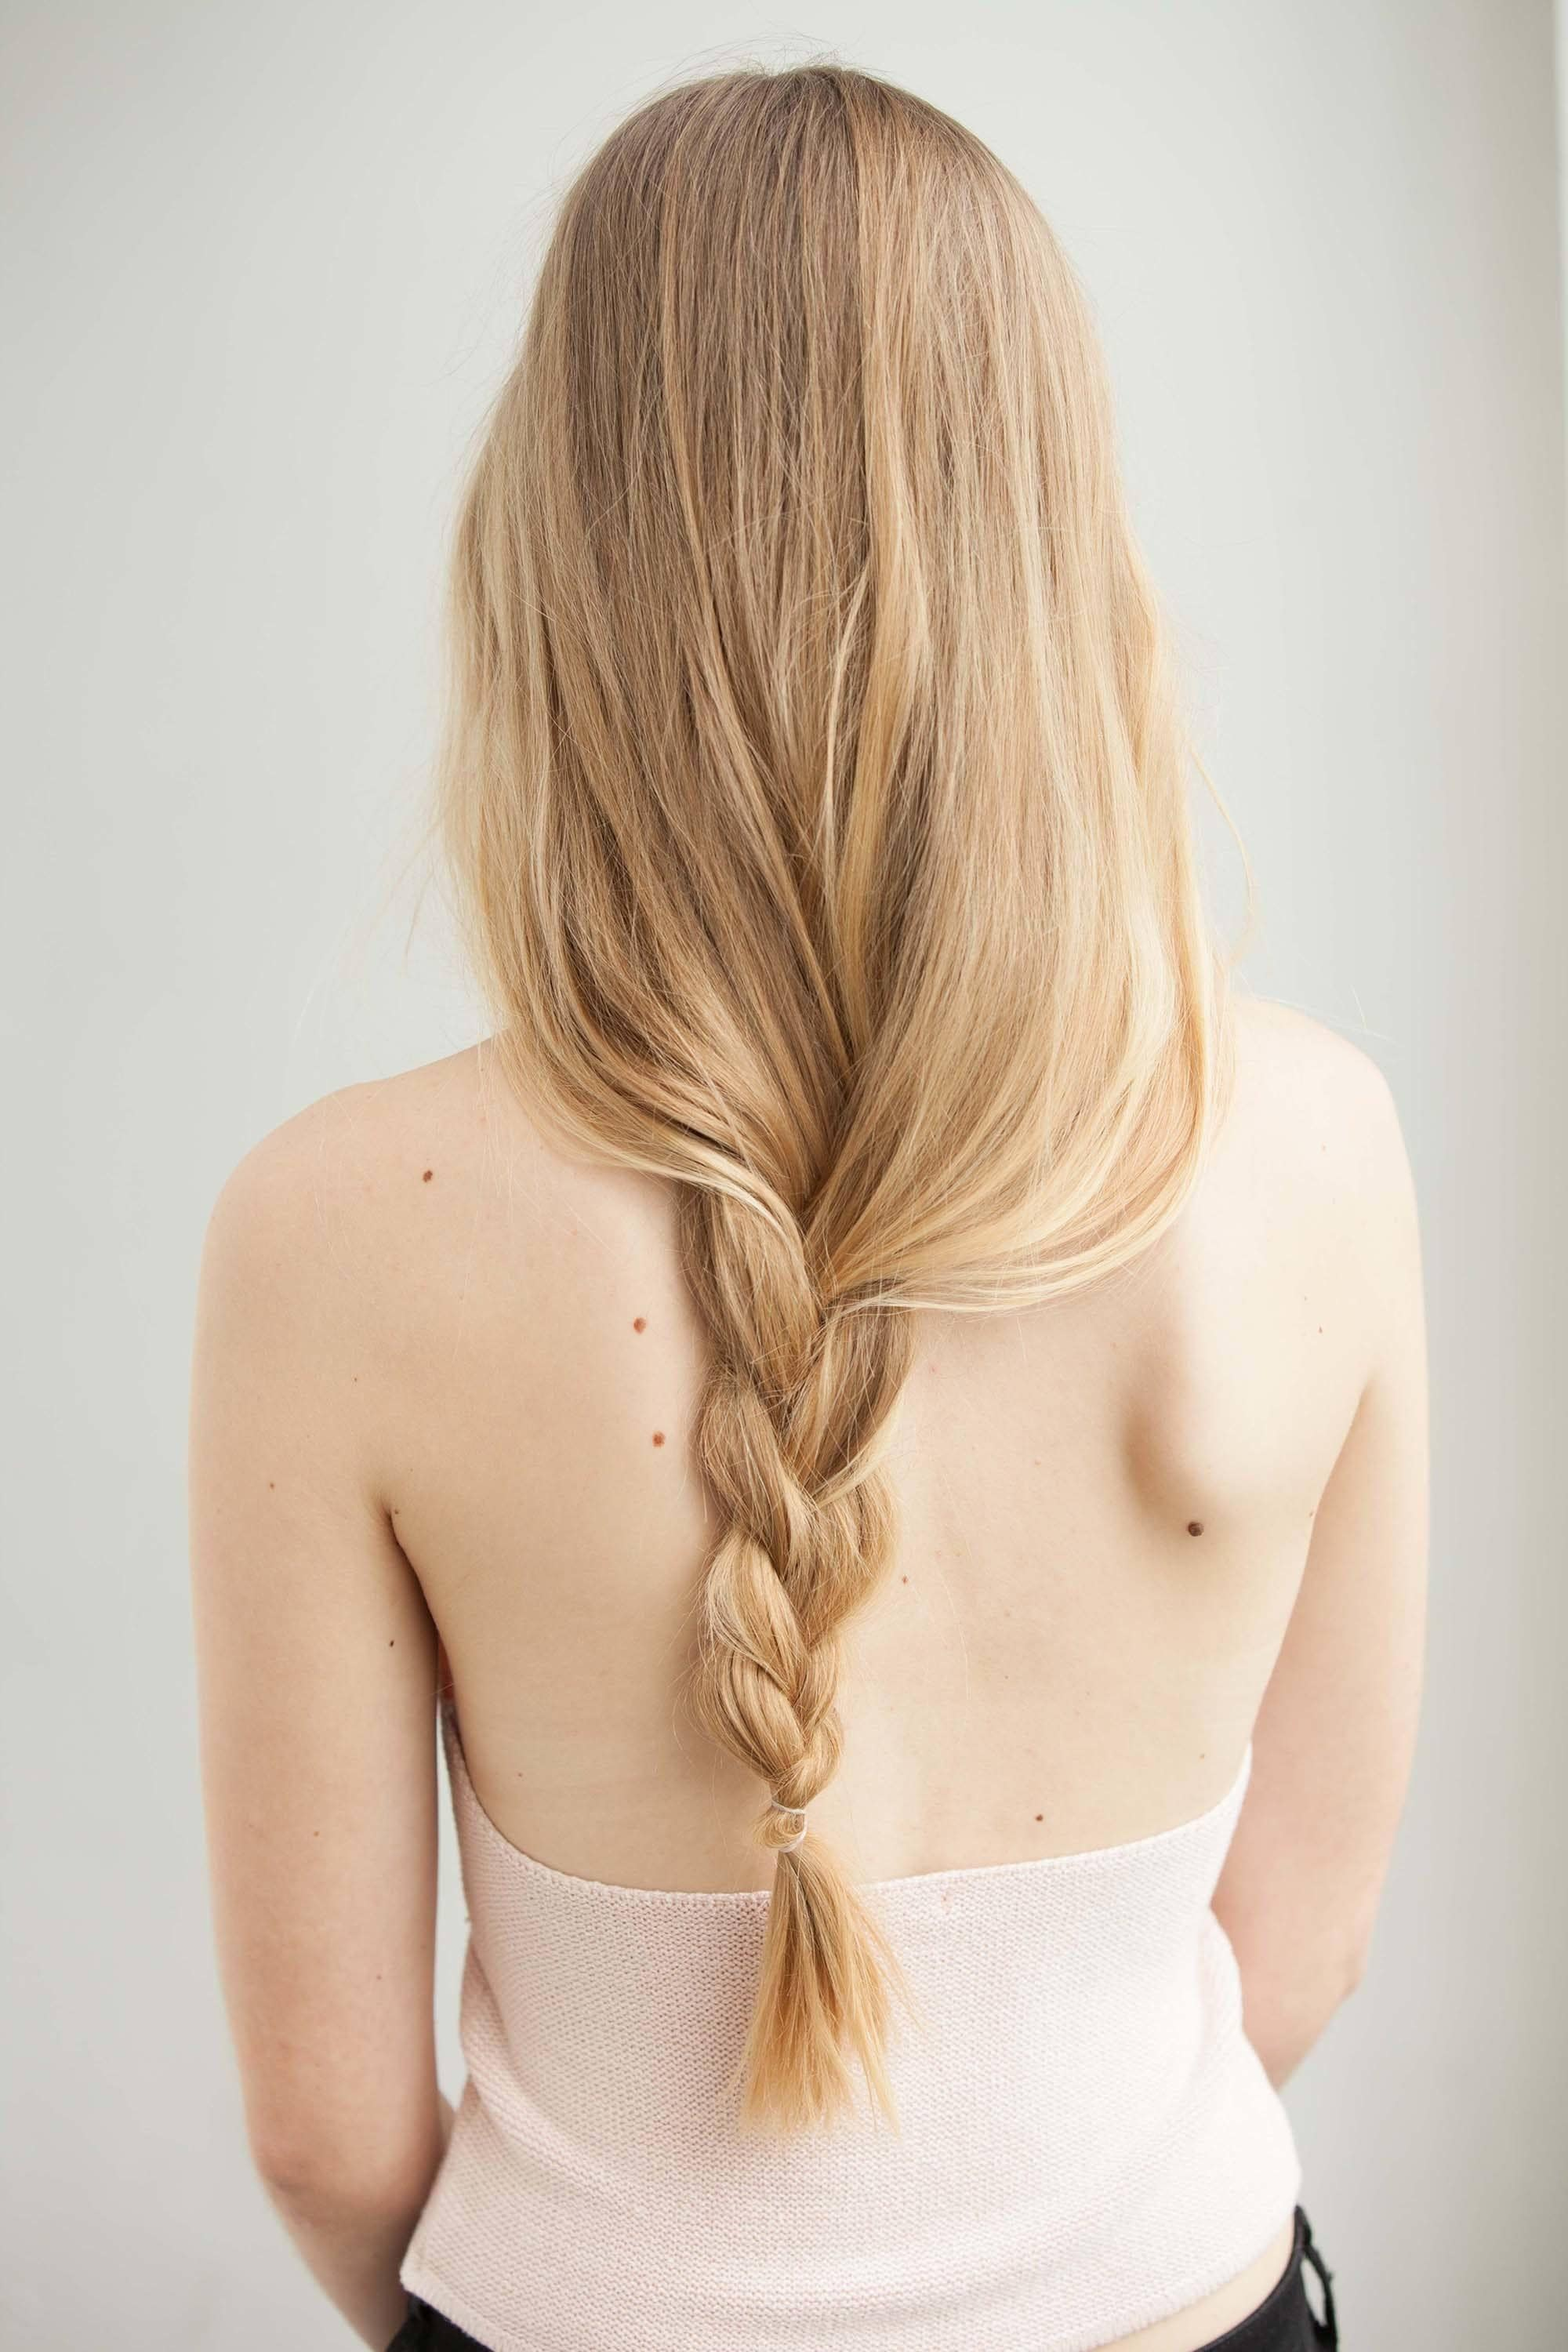 Easy updos - loose braid on long-haired blonde model